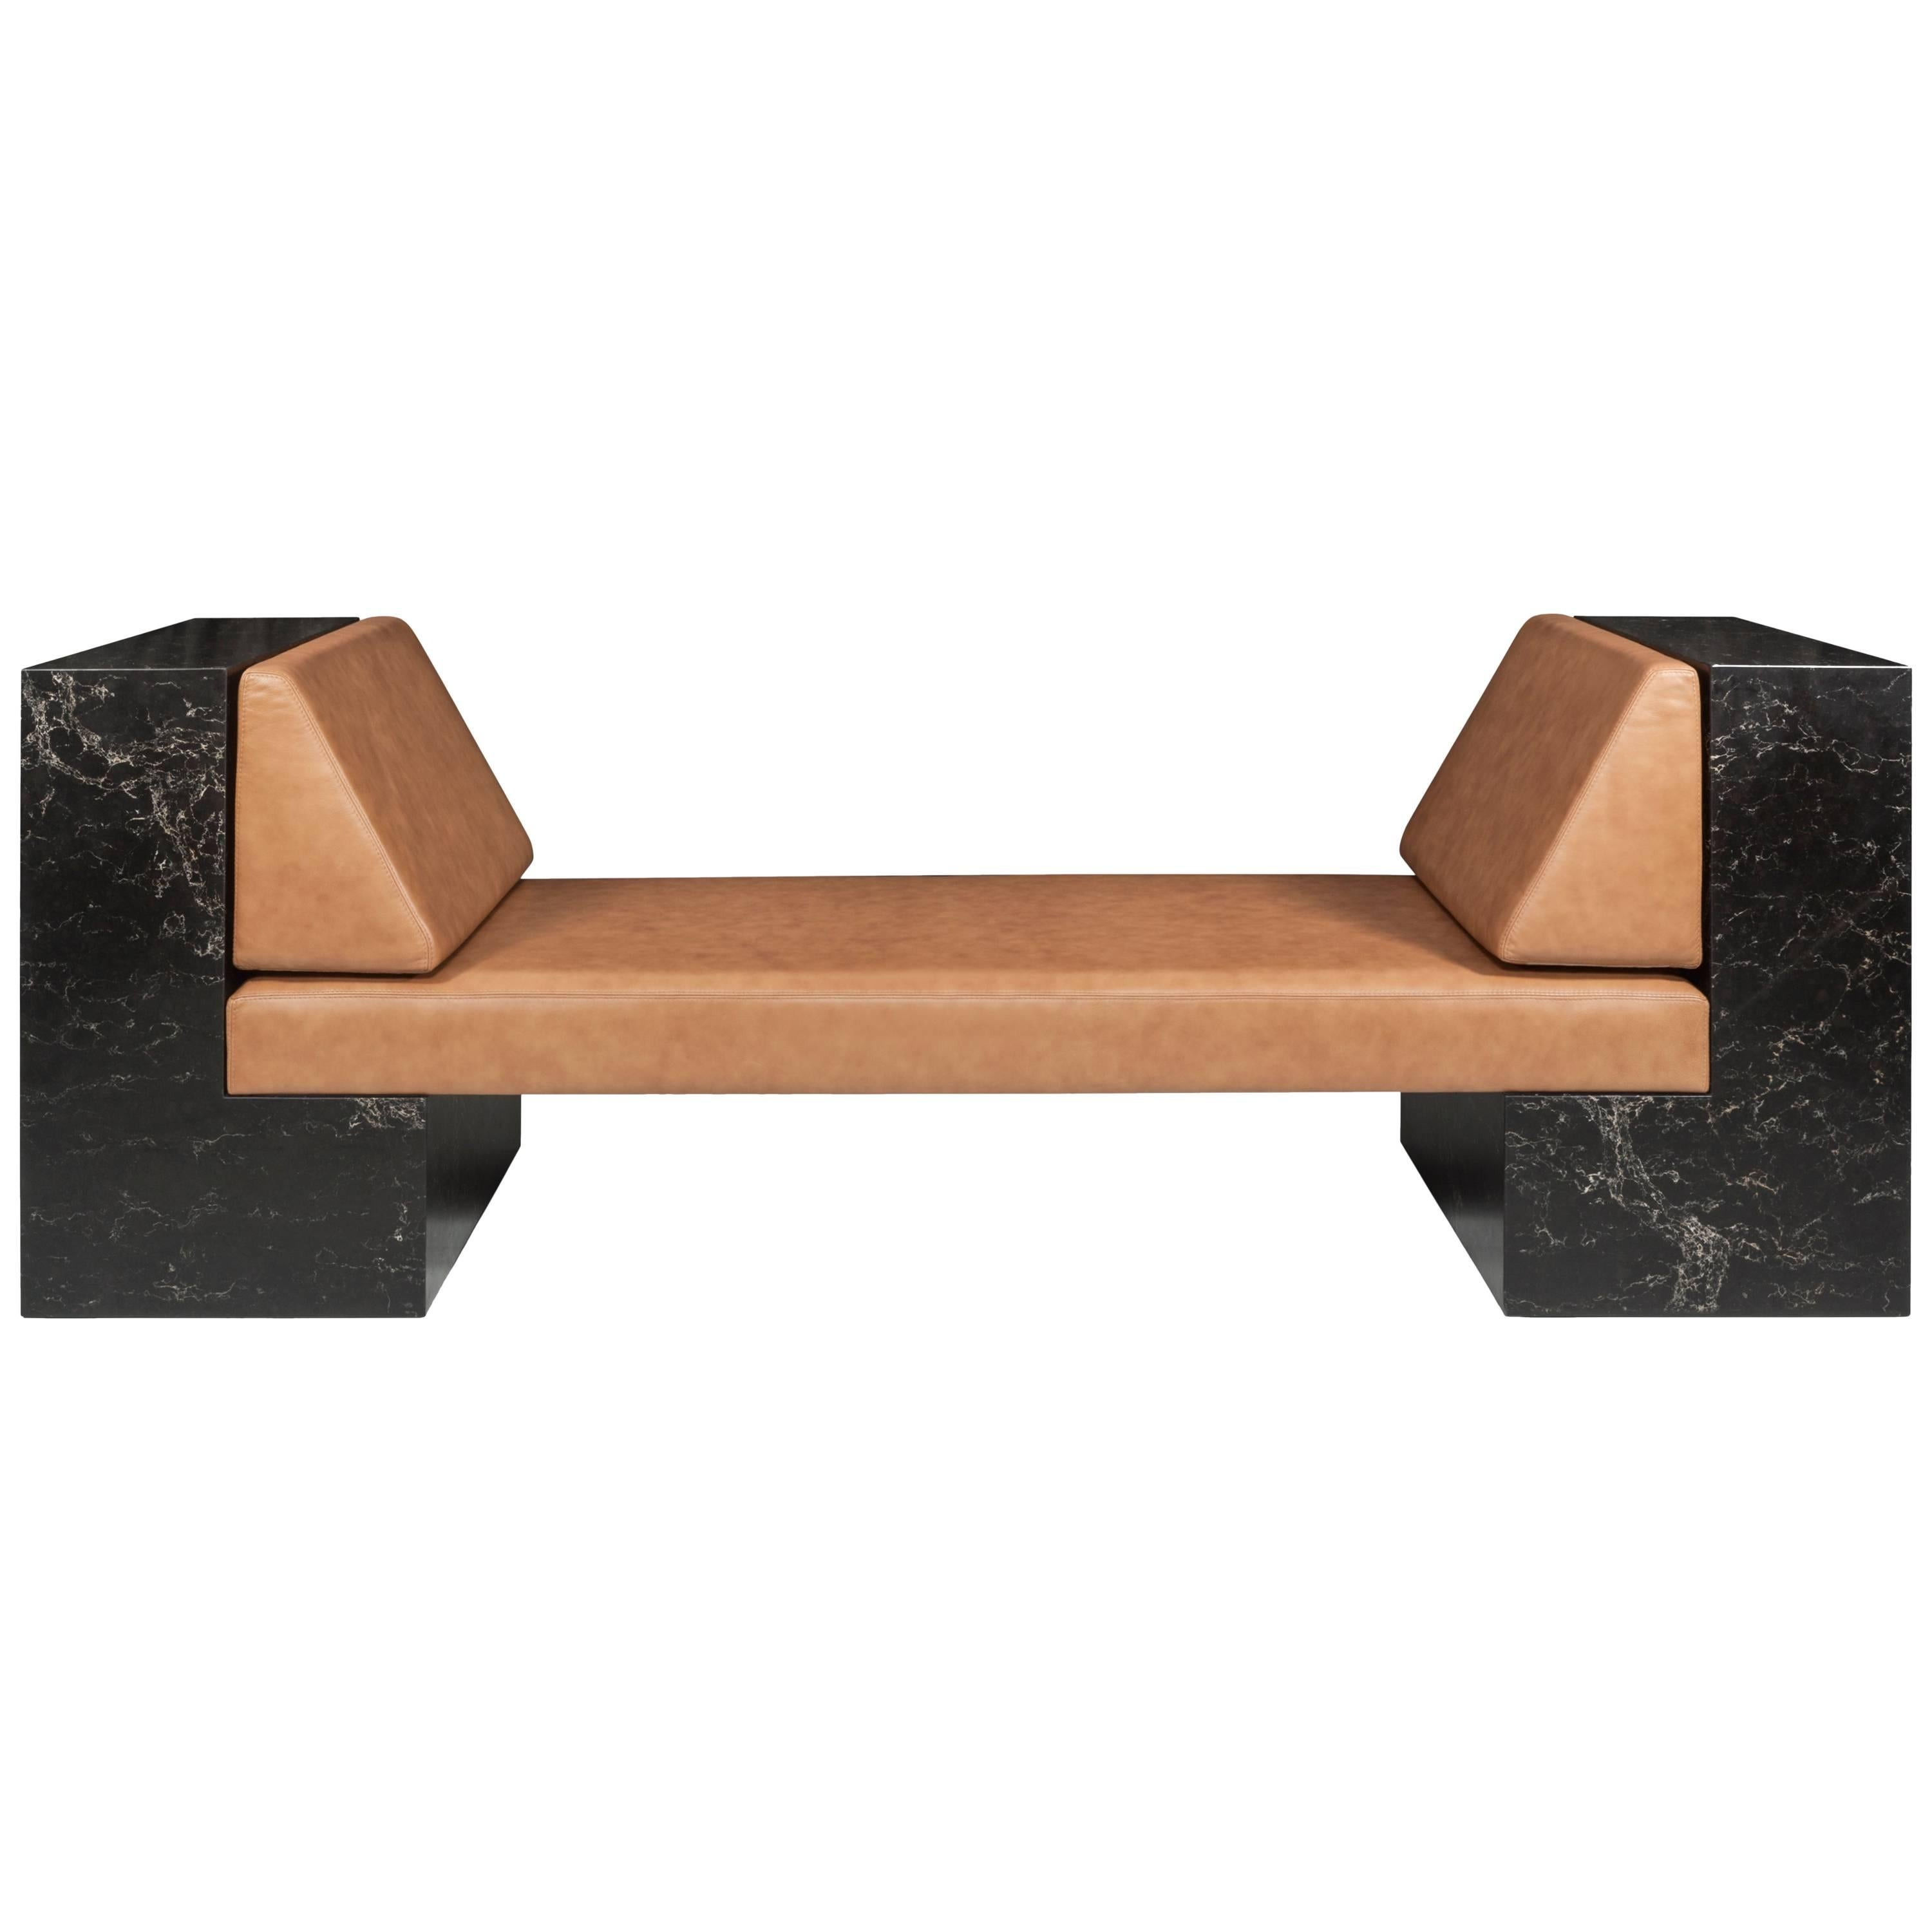 Contemporary INI Daybed in Caesarstone and Leather